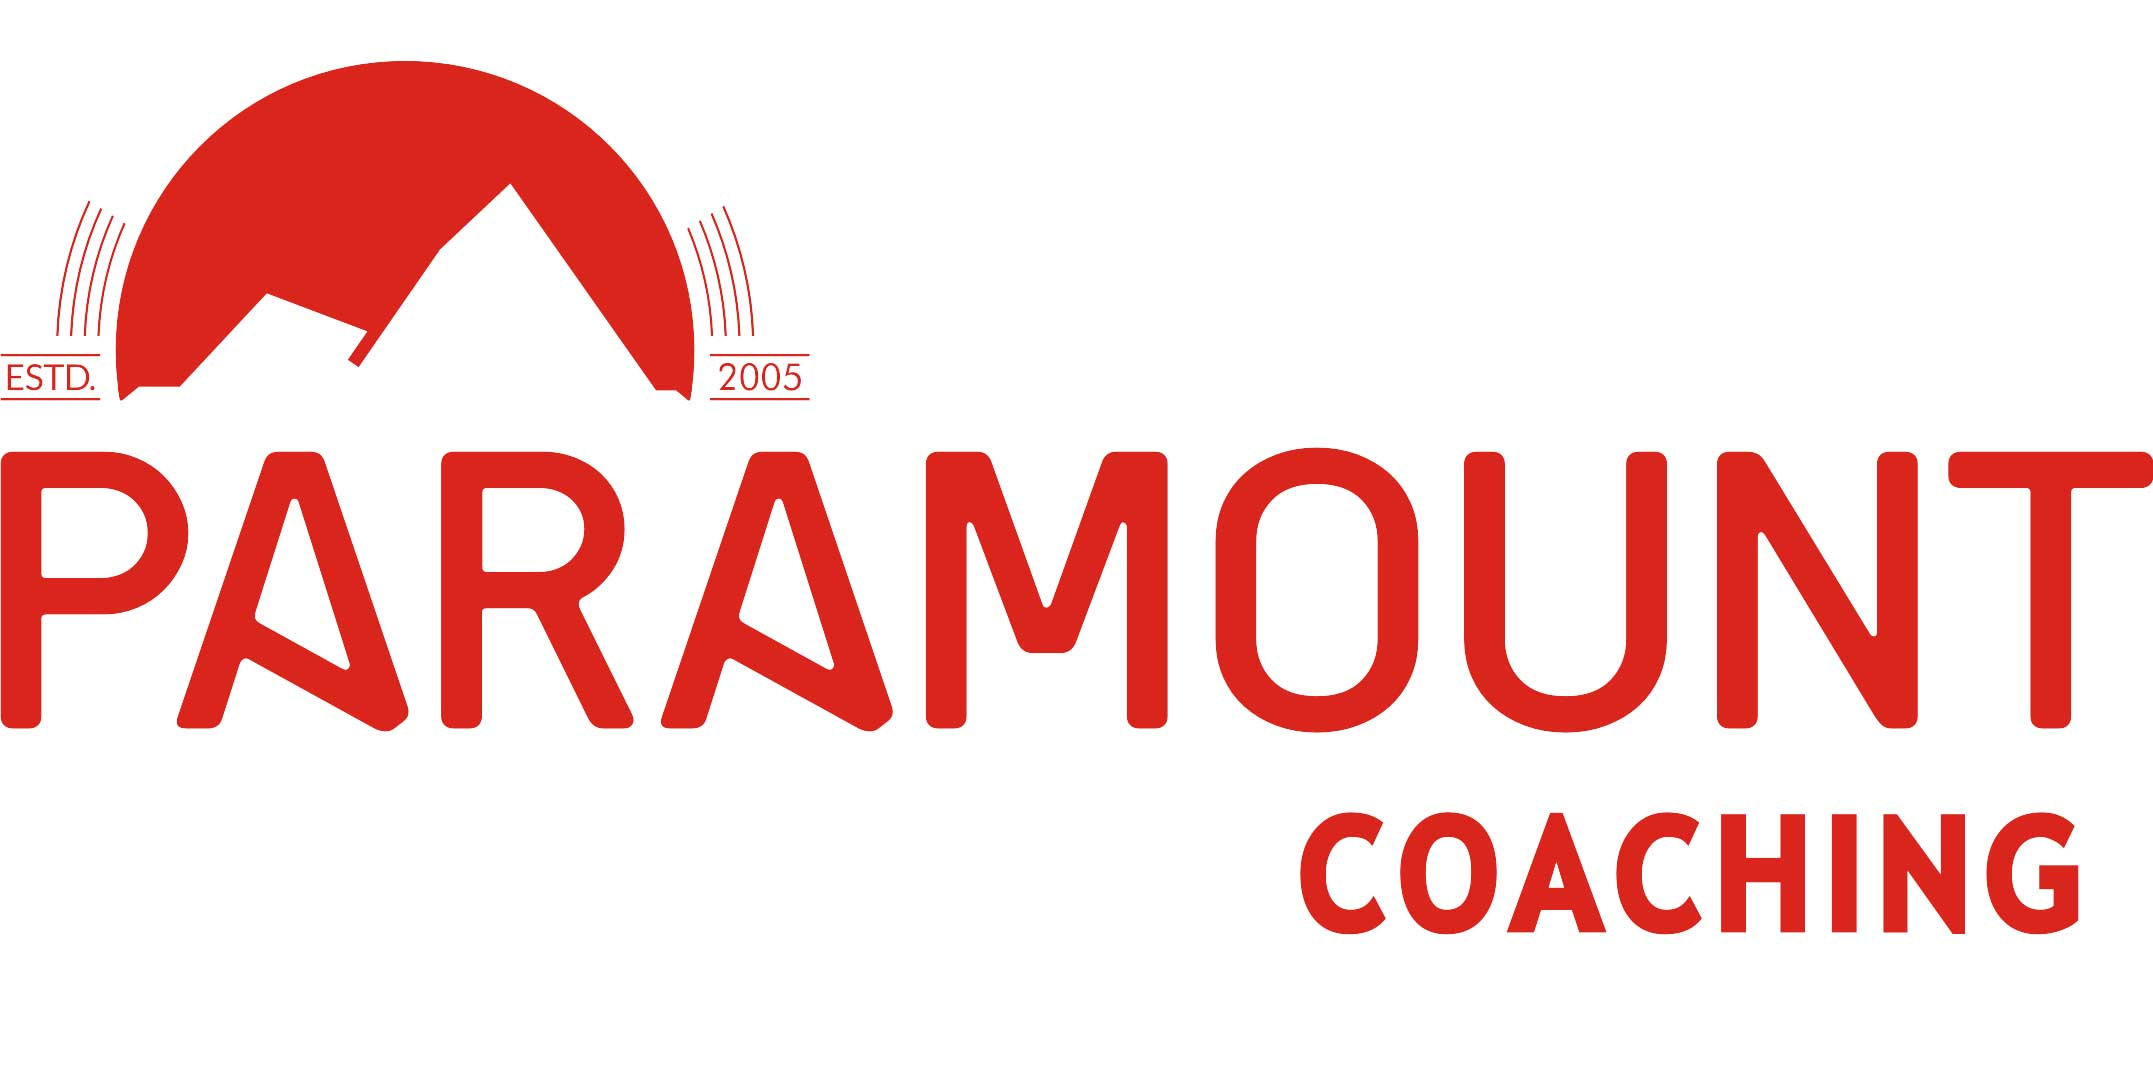 Paramount Coaching For SSC & Other Courses Fees, Duration Details